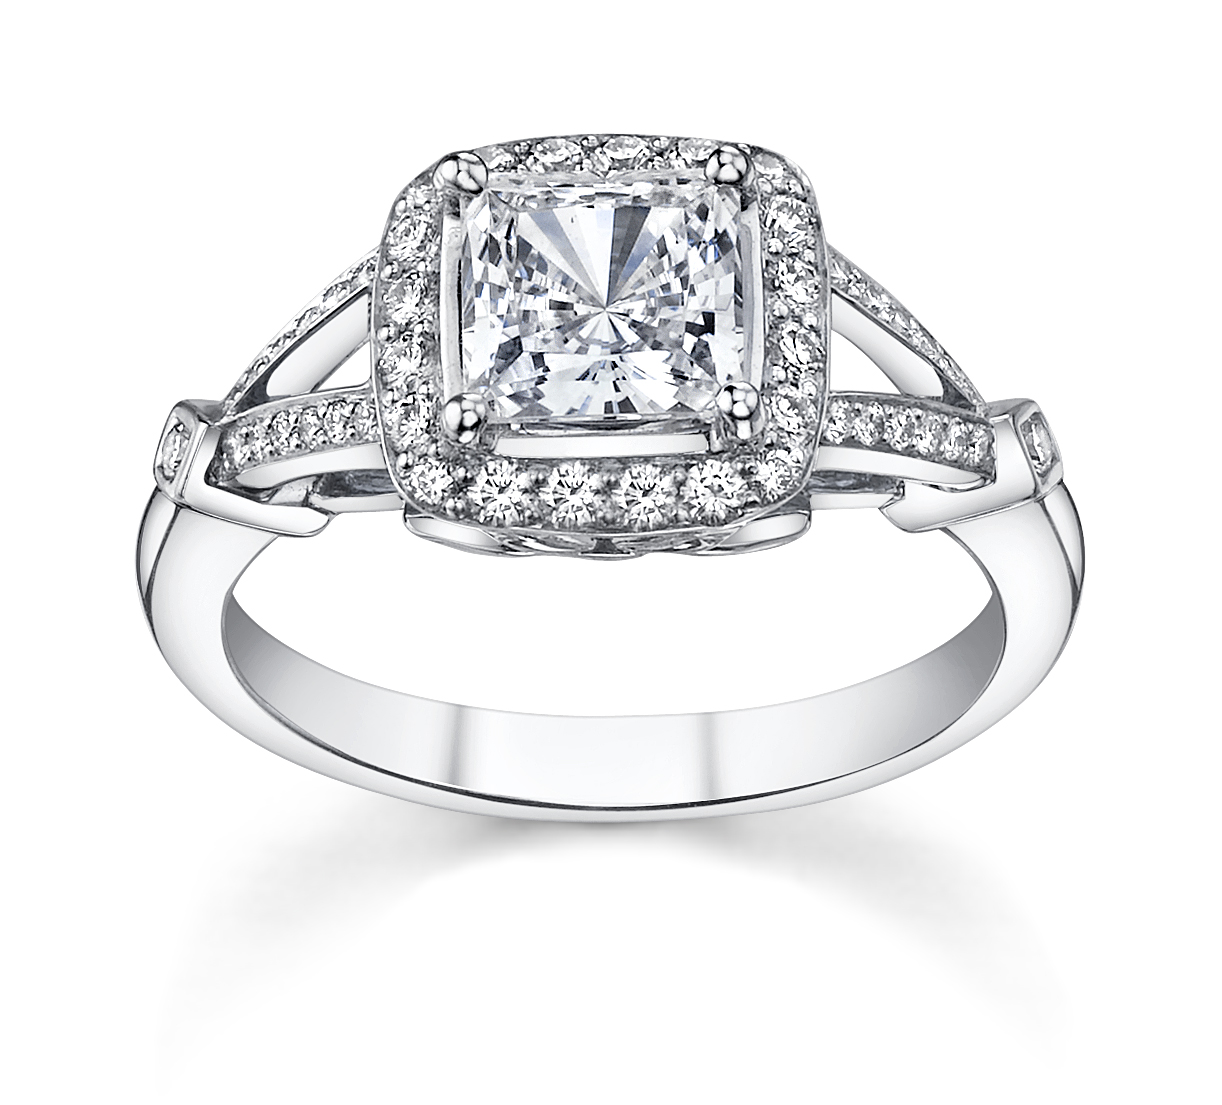 ring designs contemporary diamond dress ring designs